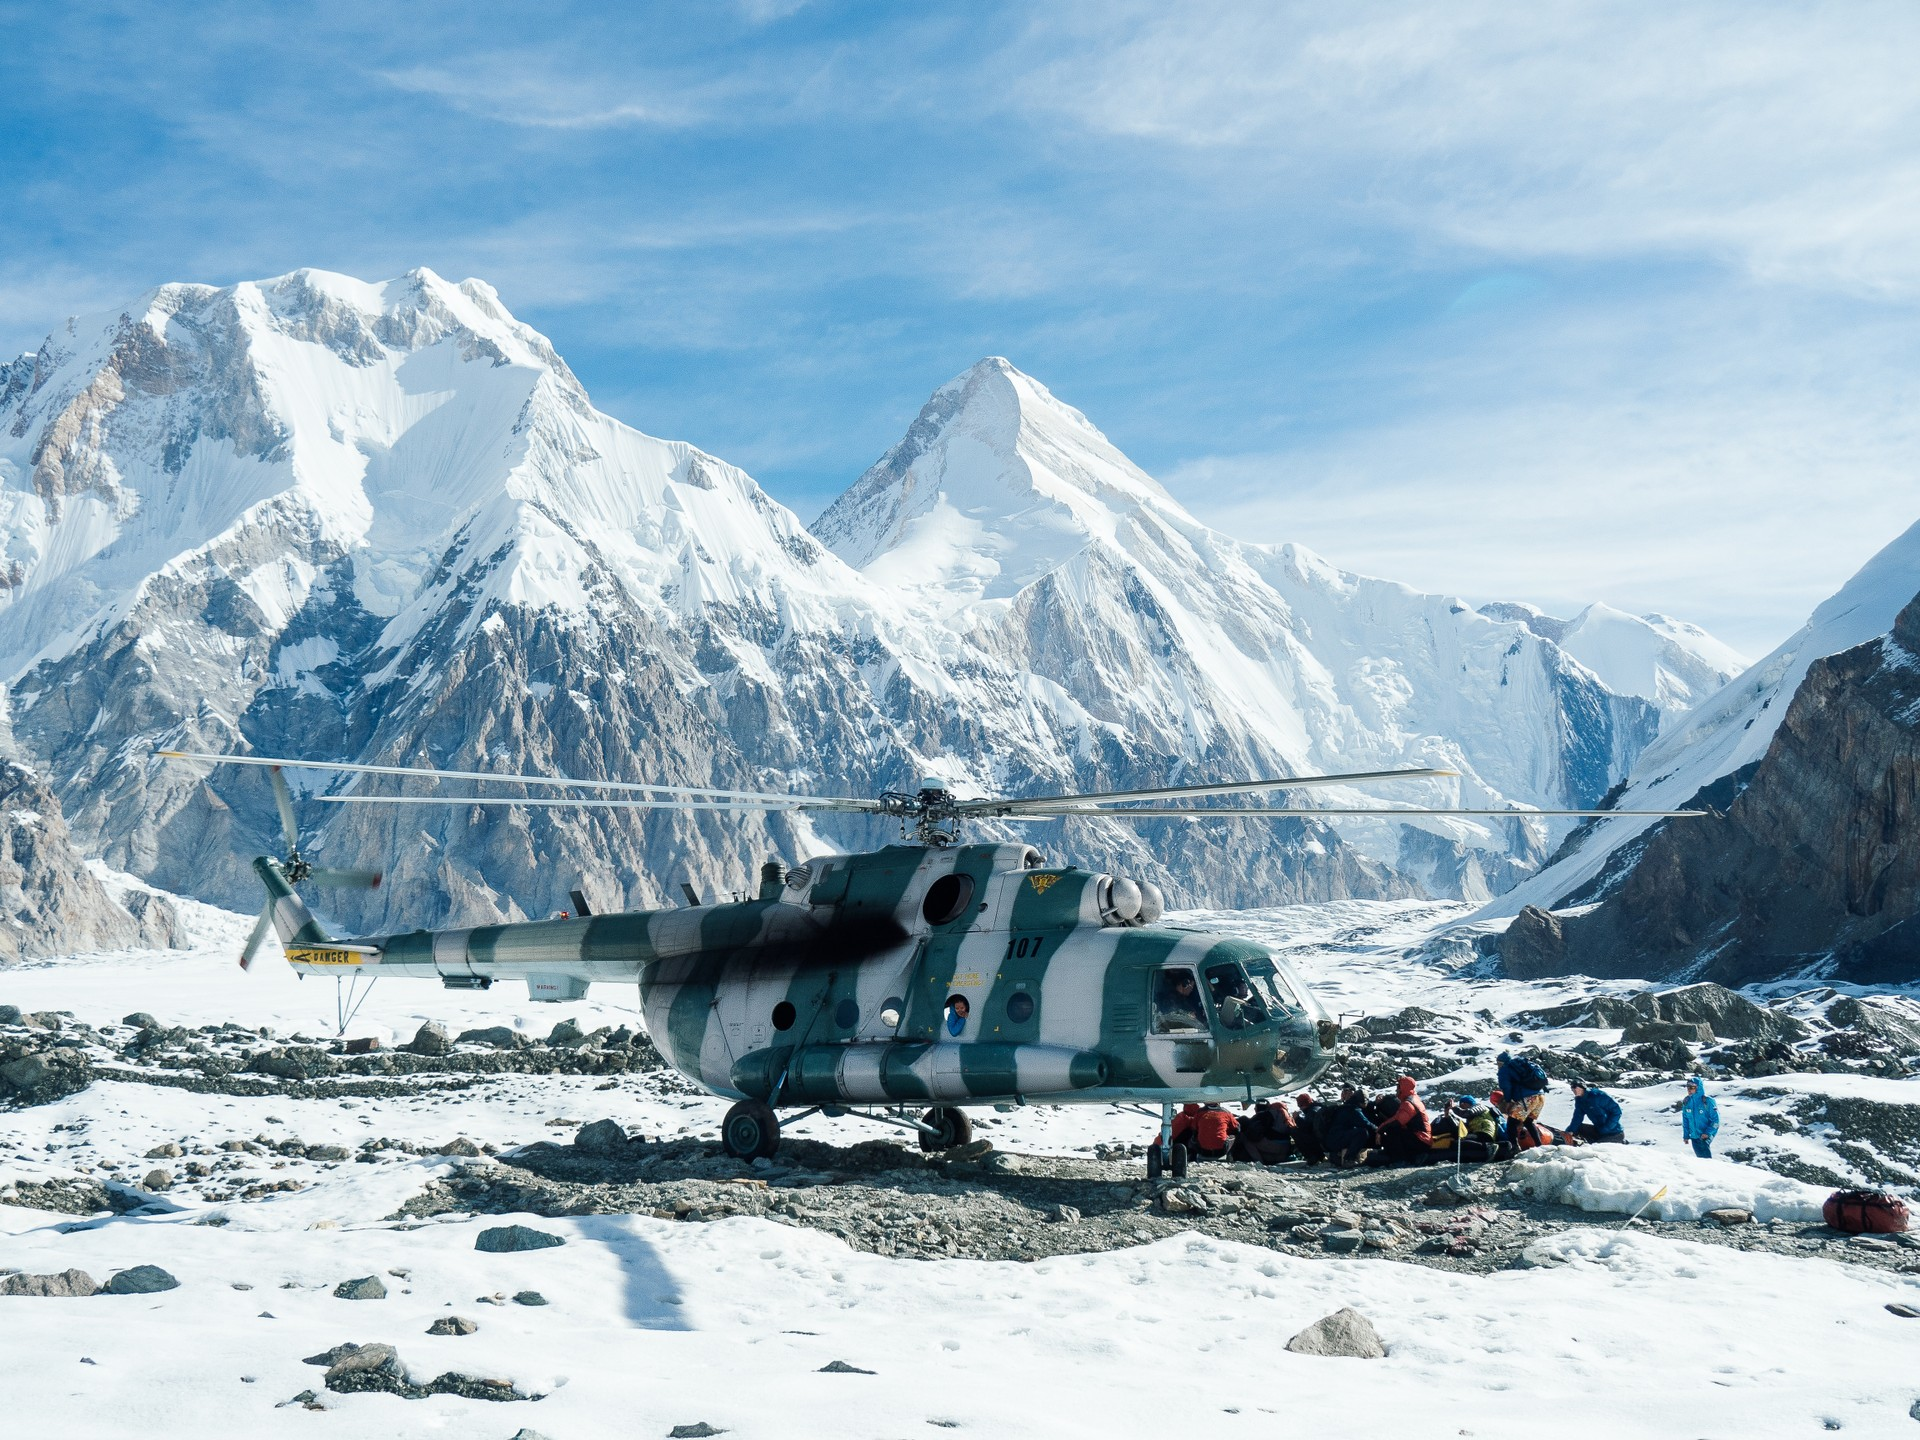 Helicopter on Inylchek Glacier in Kyrgyzstan